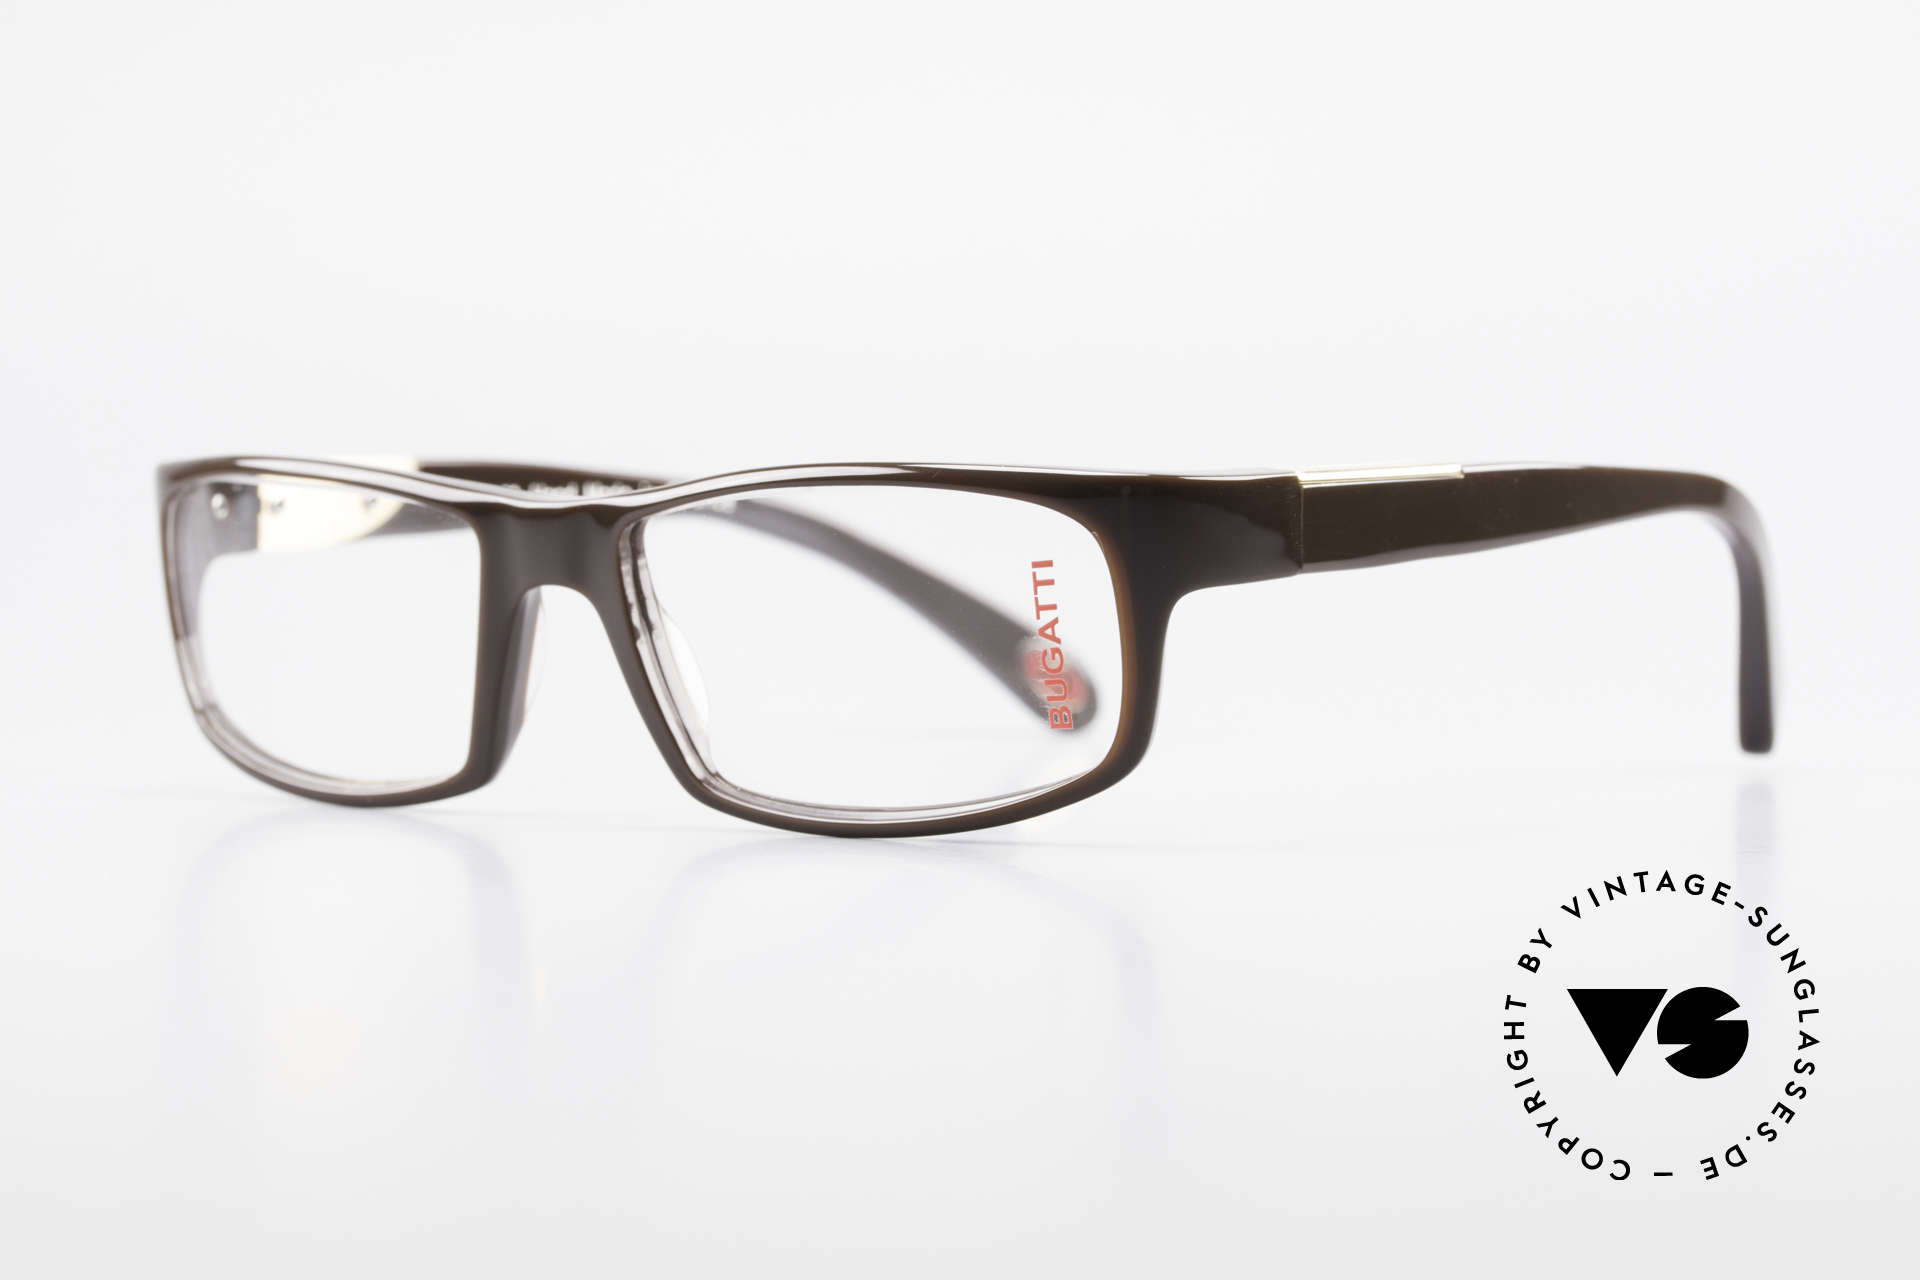 Bugatti 532 Striking Men's Eyeglass-Frame, 1. class wearing comfort due to spring hinges, Made for Men